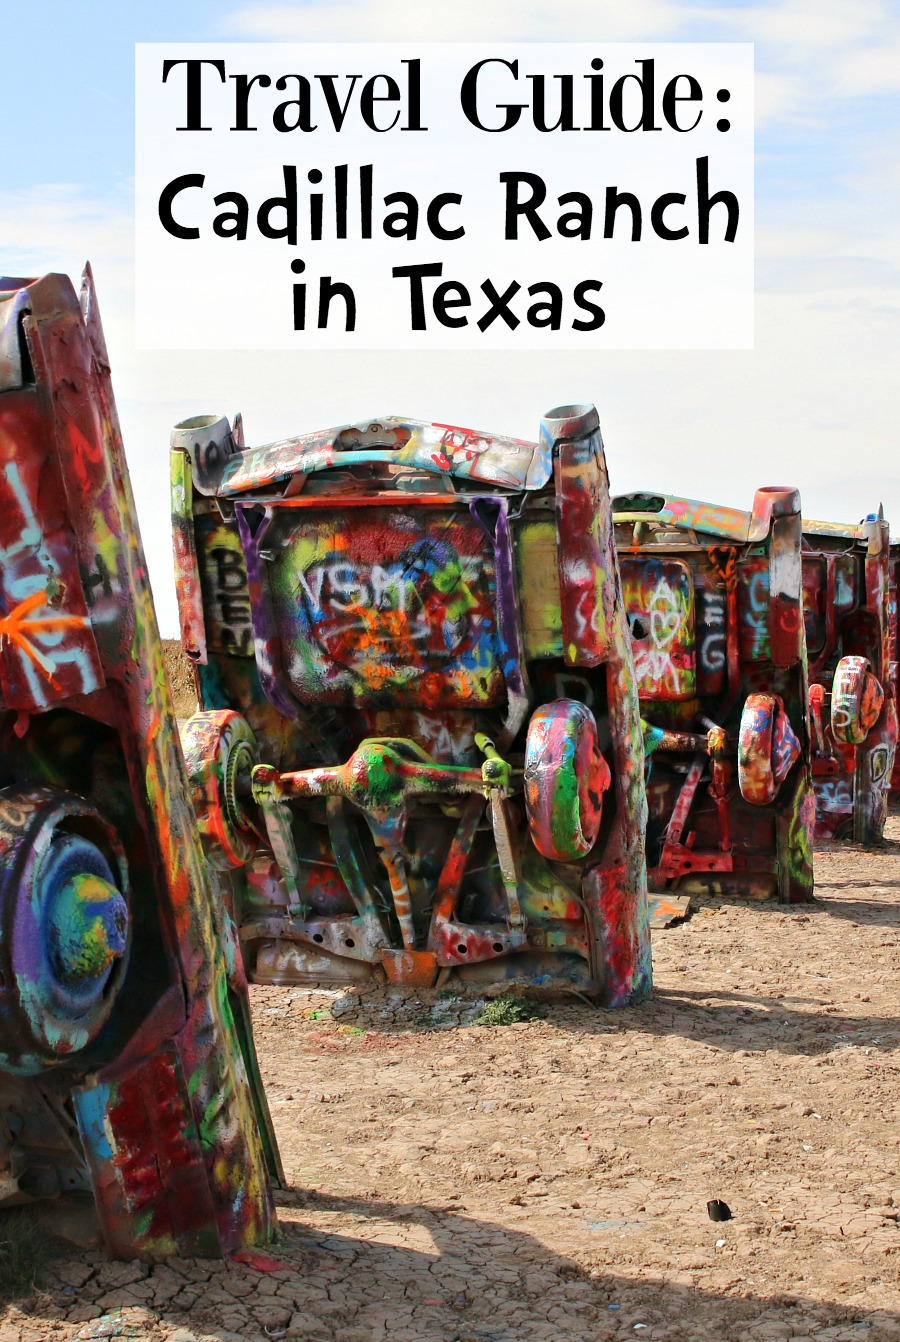 Travel Guide Cadillac Ranch in Texas